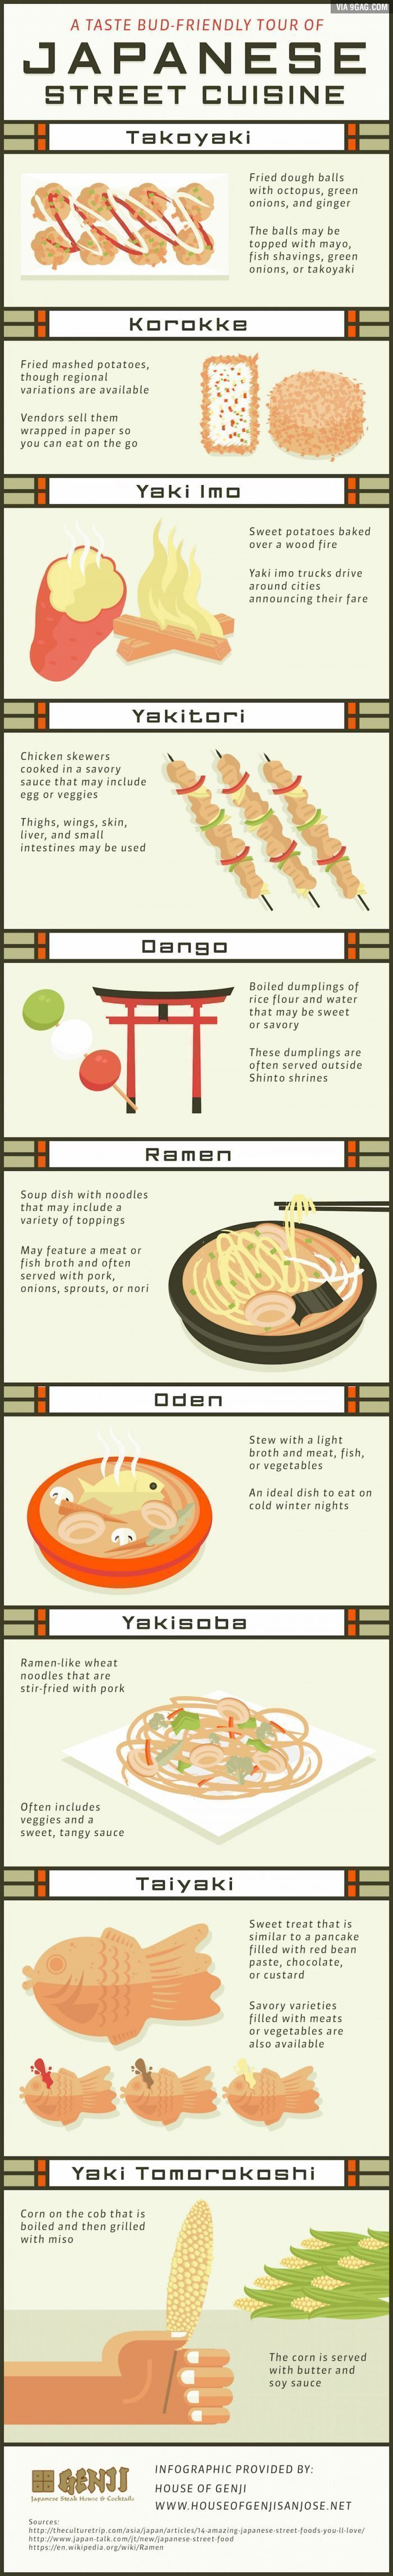 10 Delicious Japanese Street Foods That You Should Try. the real japan, real japan, japan, japanese, guide, tips, resource, tips, tricks, information, guide, community, adventure, explore, trip, tour, vacation, holiday, planning, travel, tourist, tourism, backpack, hiking, manga, anime #JapanTravelWebsite #japanesetips